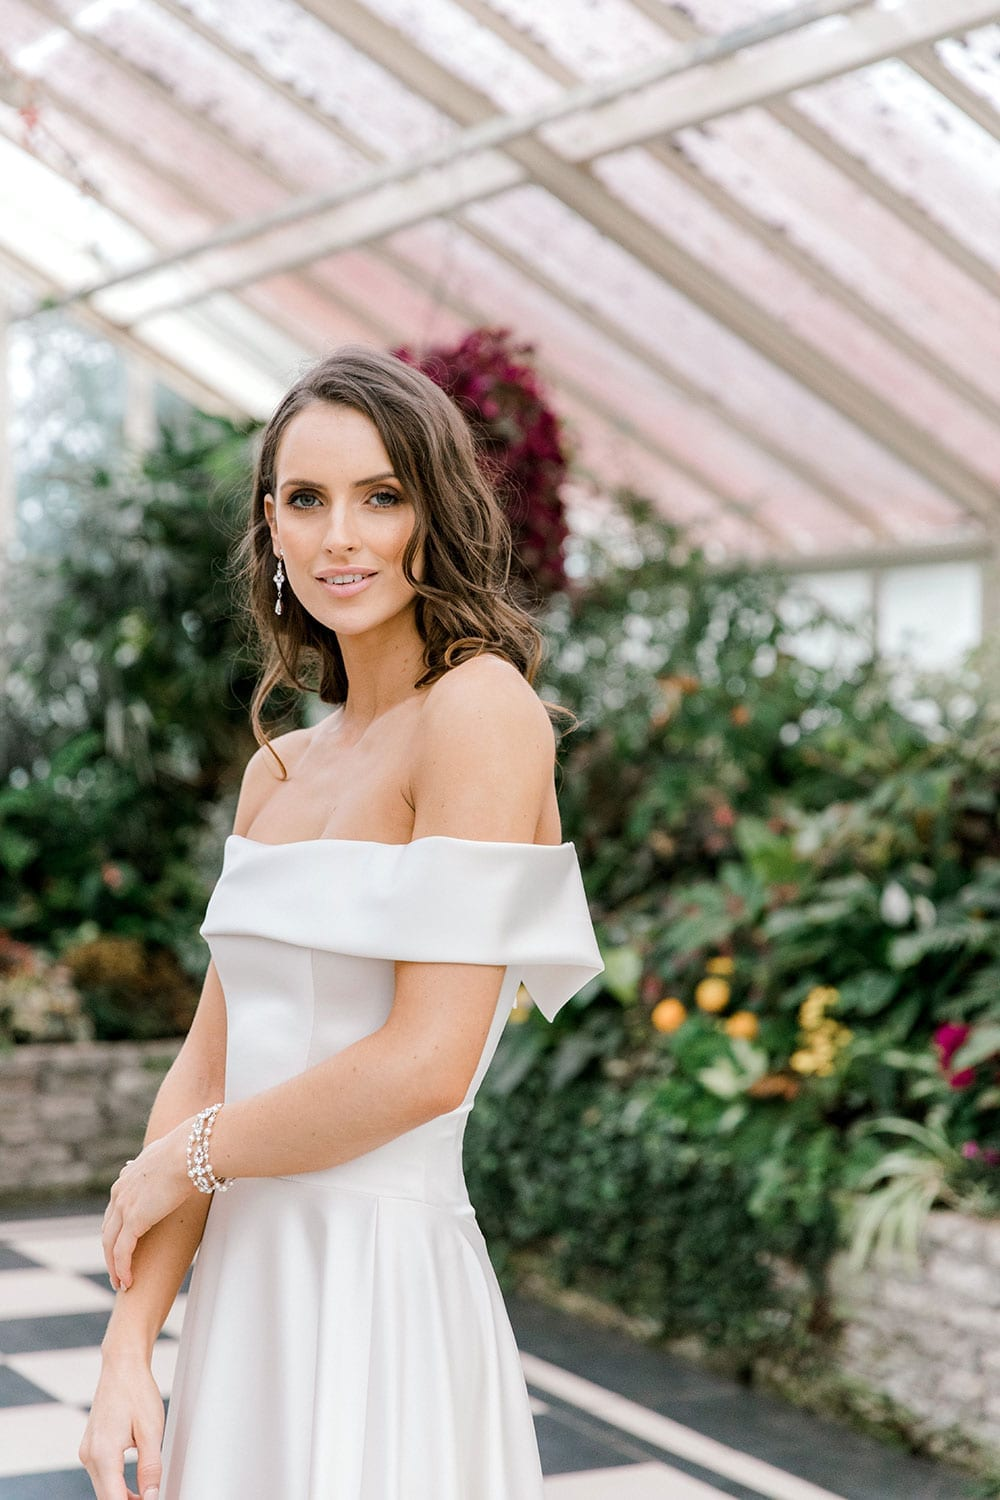 Model wearing Vinka Design Deor Wedding Dress, an Off-Shoulder Satin Wedding Gown side angled facing camera inside botanical garden greenhouse